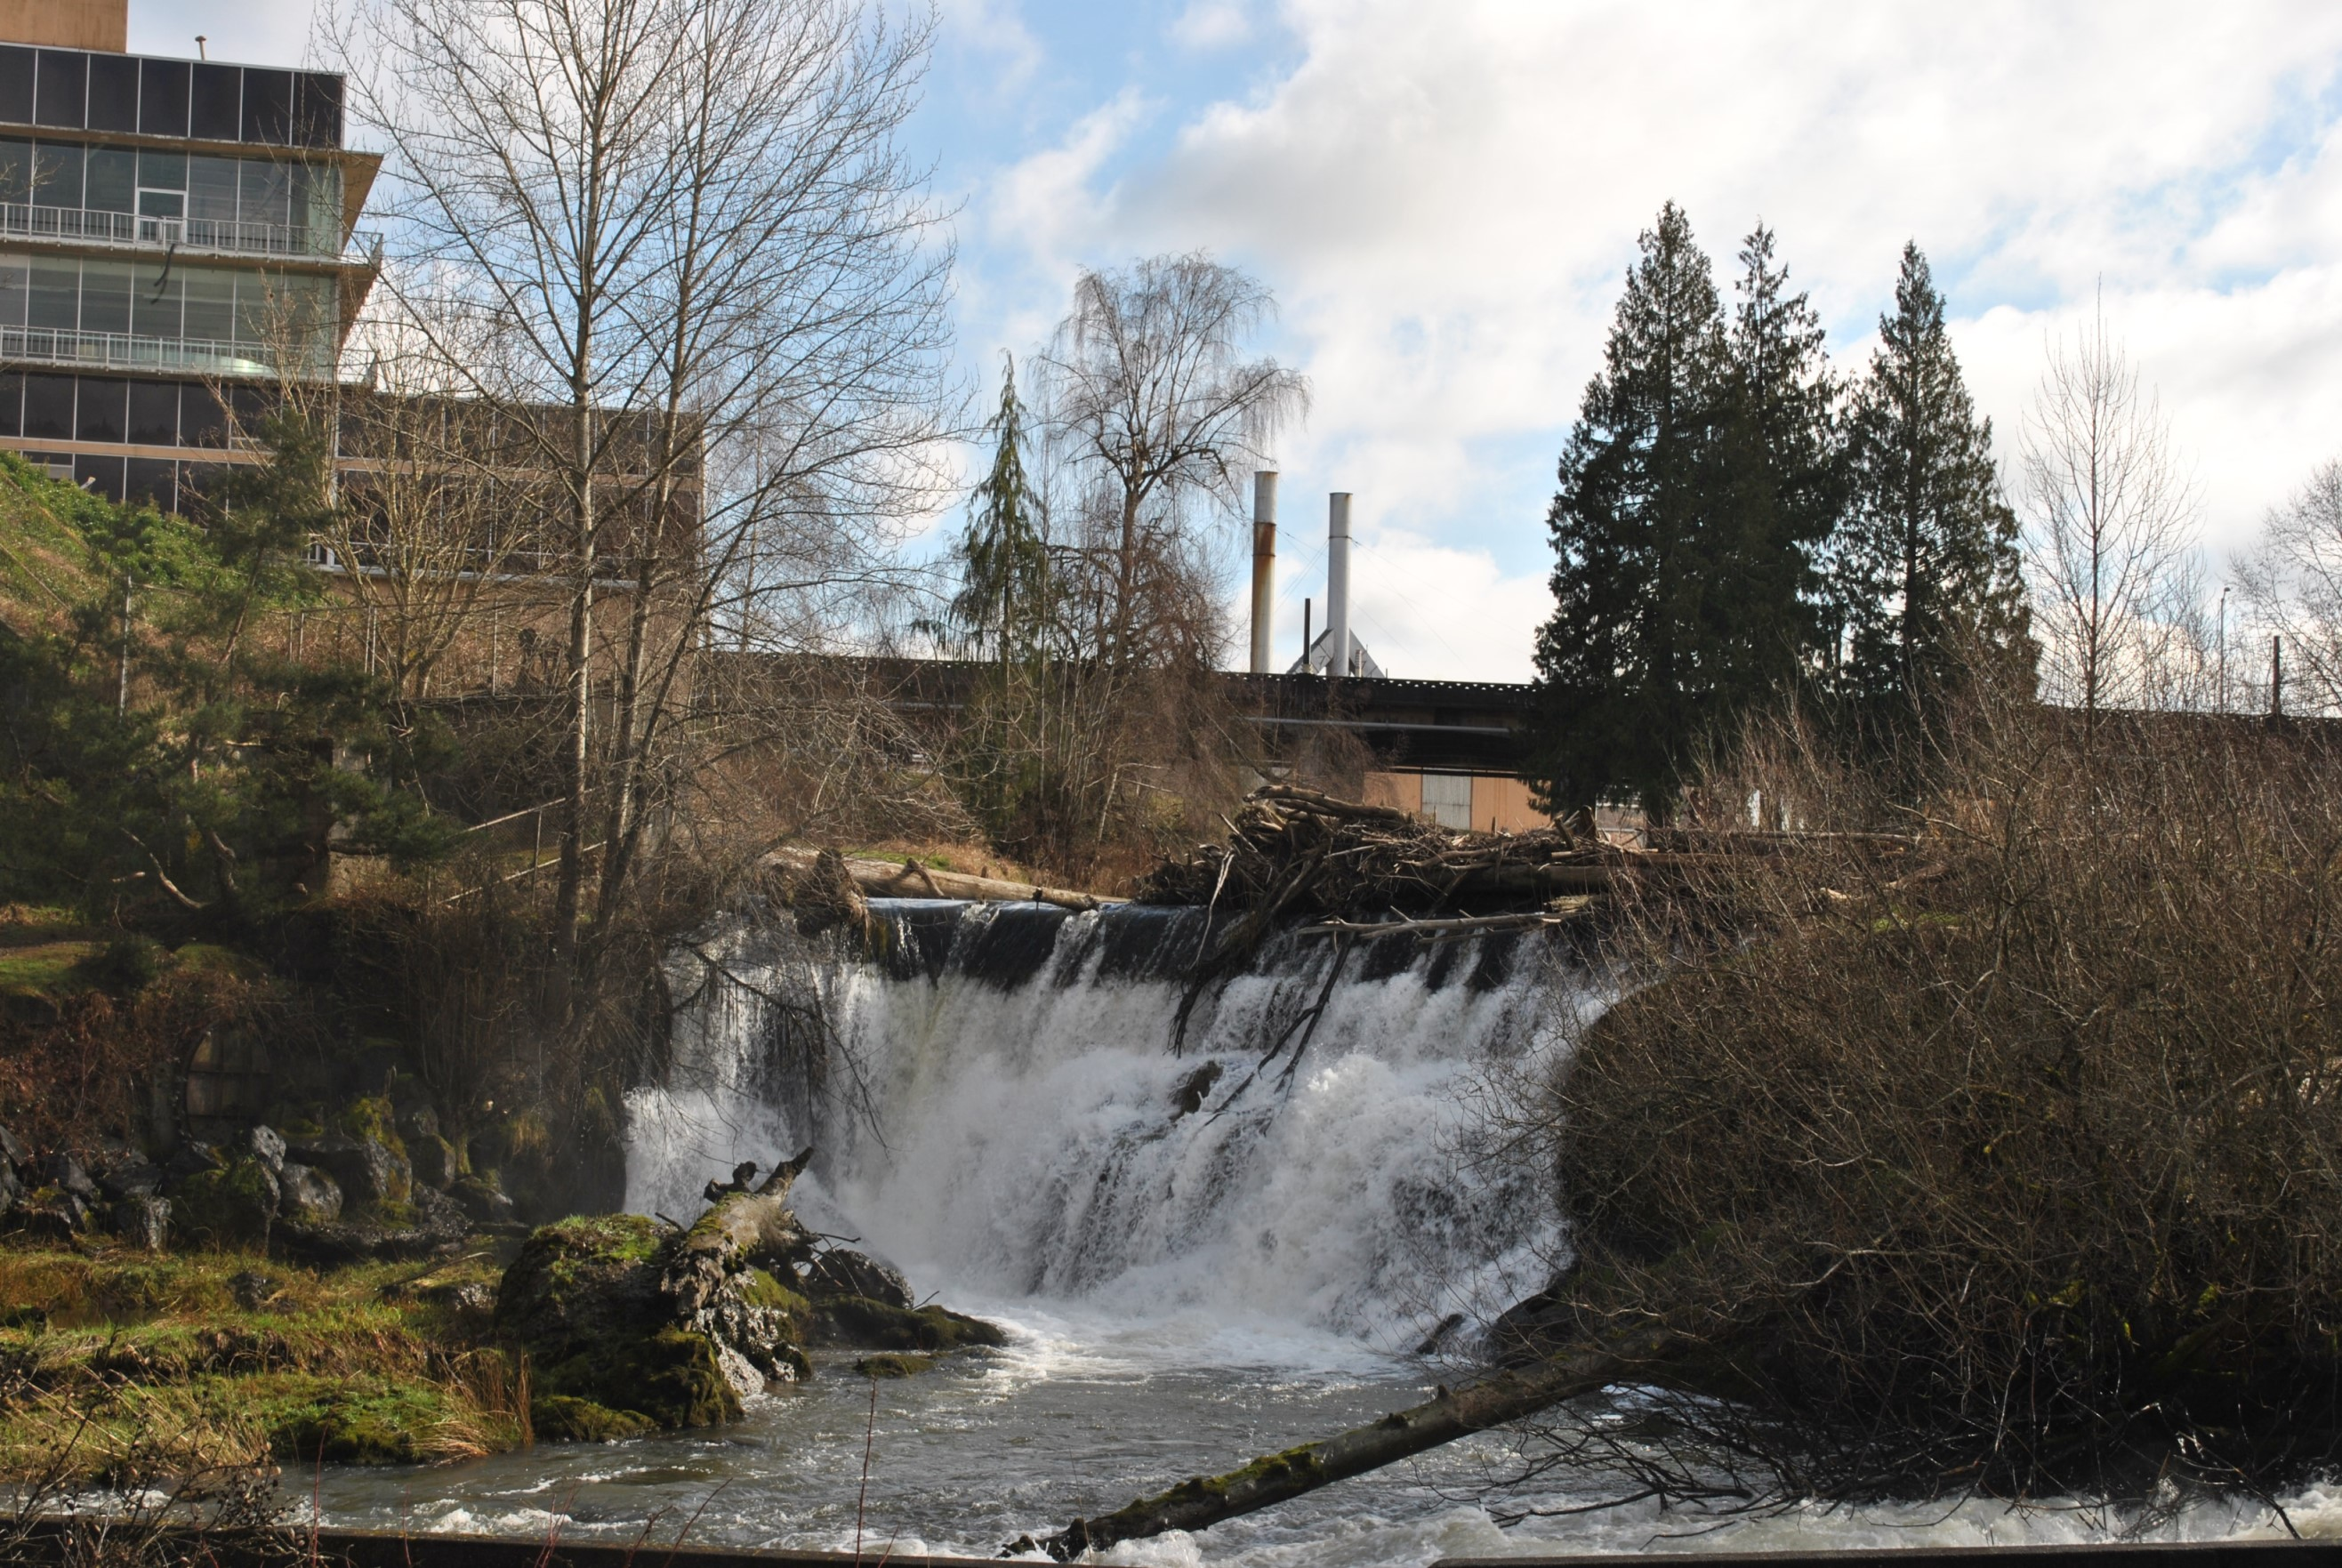 A waterfall is seen in the foreground with the old Olympia Brewery building in the background.